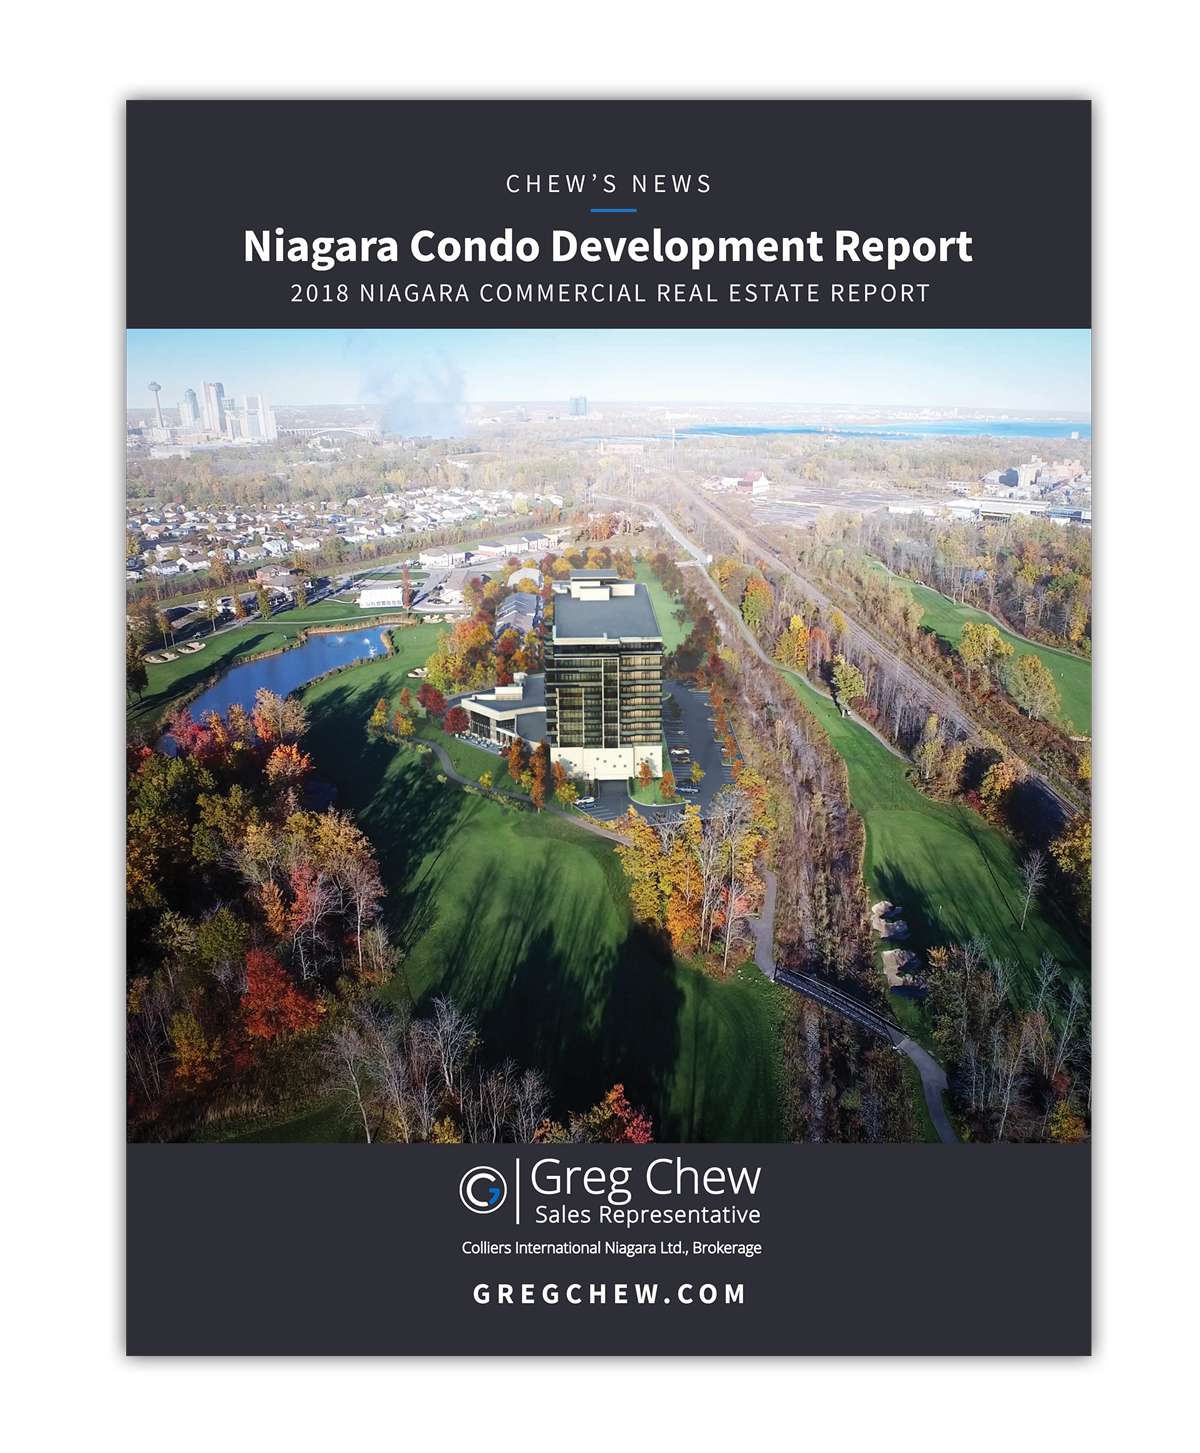 Condo developments in Niagara for 2018